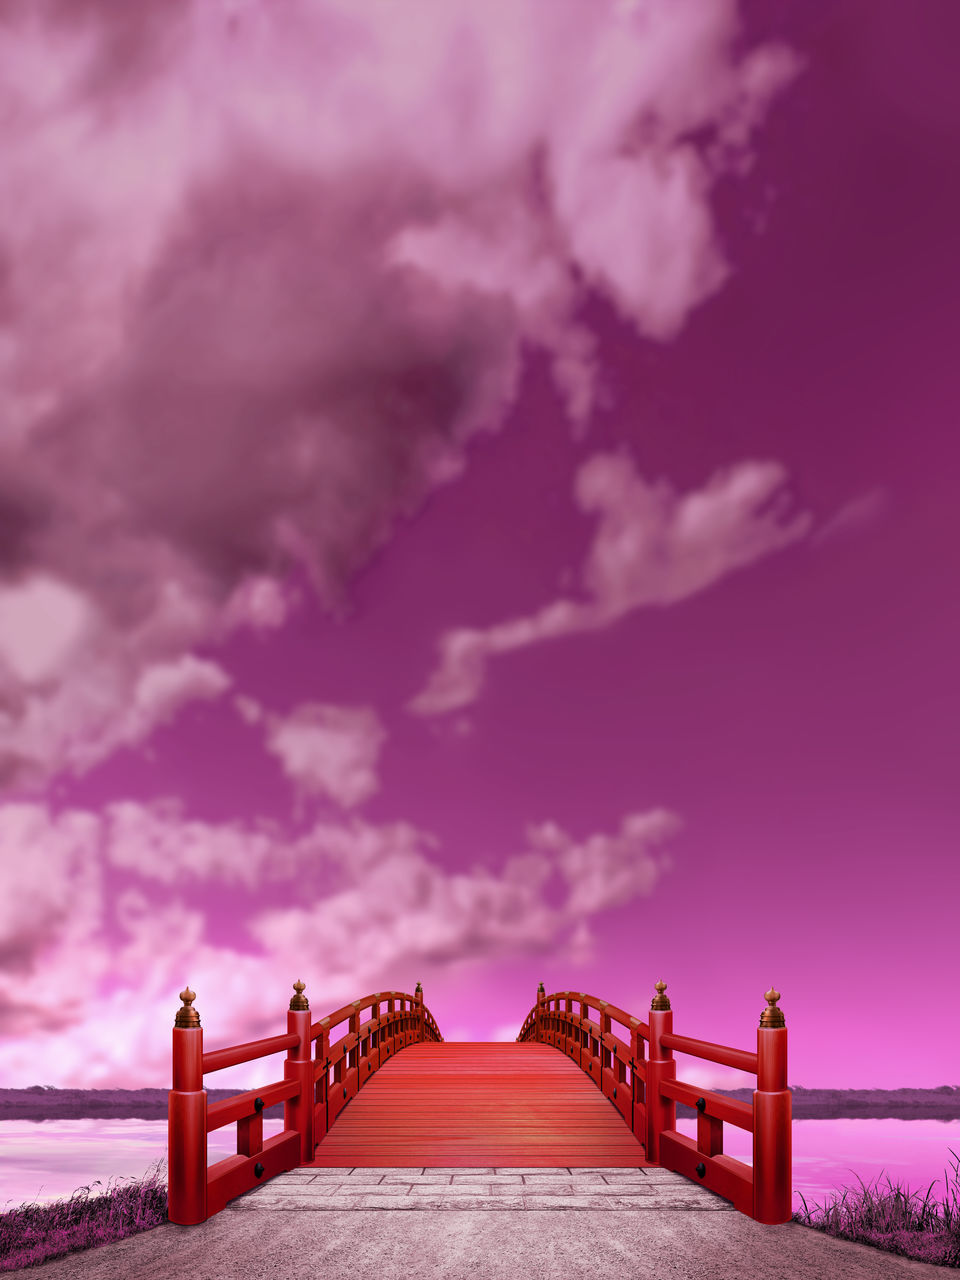 sky, cloud - sky, direction, architecture, nature, built structure, bridge, outdoors, the way forward, connection, pink color, railing, purple, no people, bridge - man made structure, solitude, freedom, choice, individuality, long